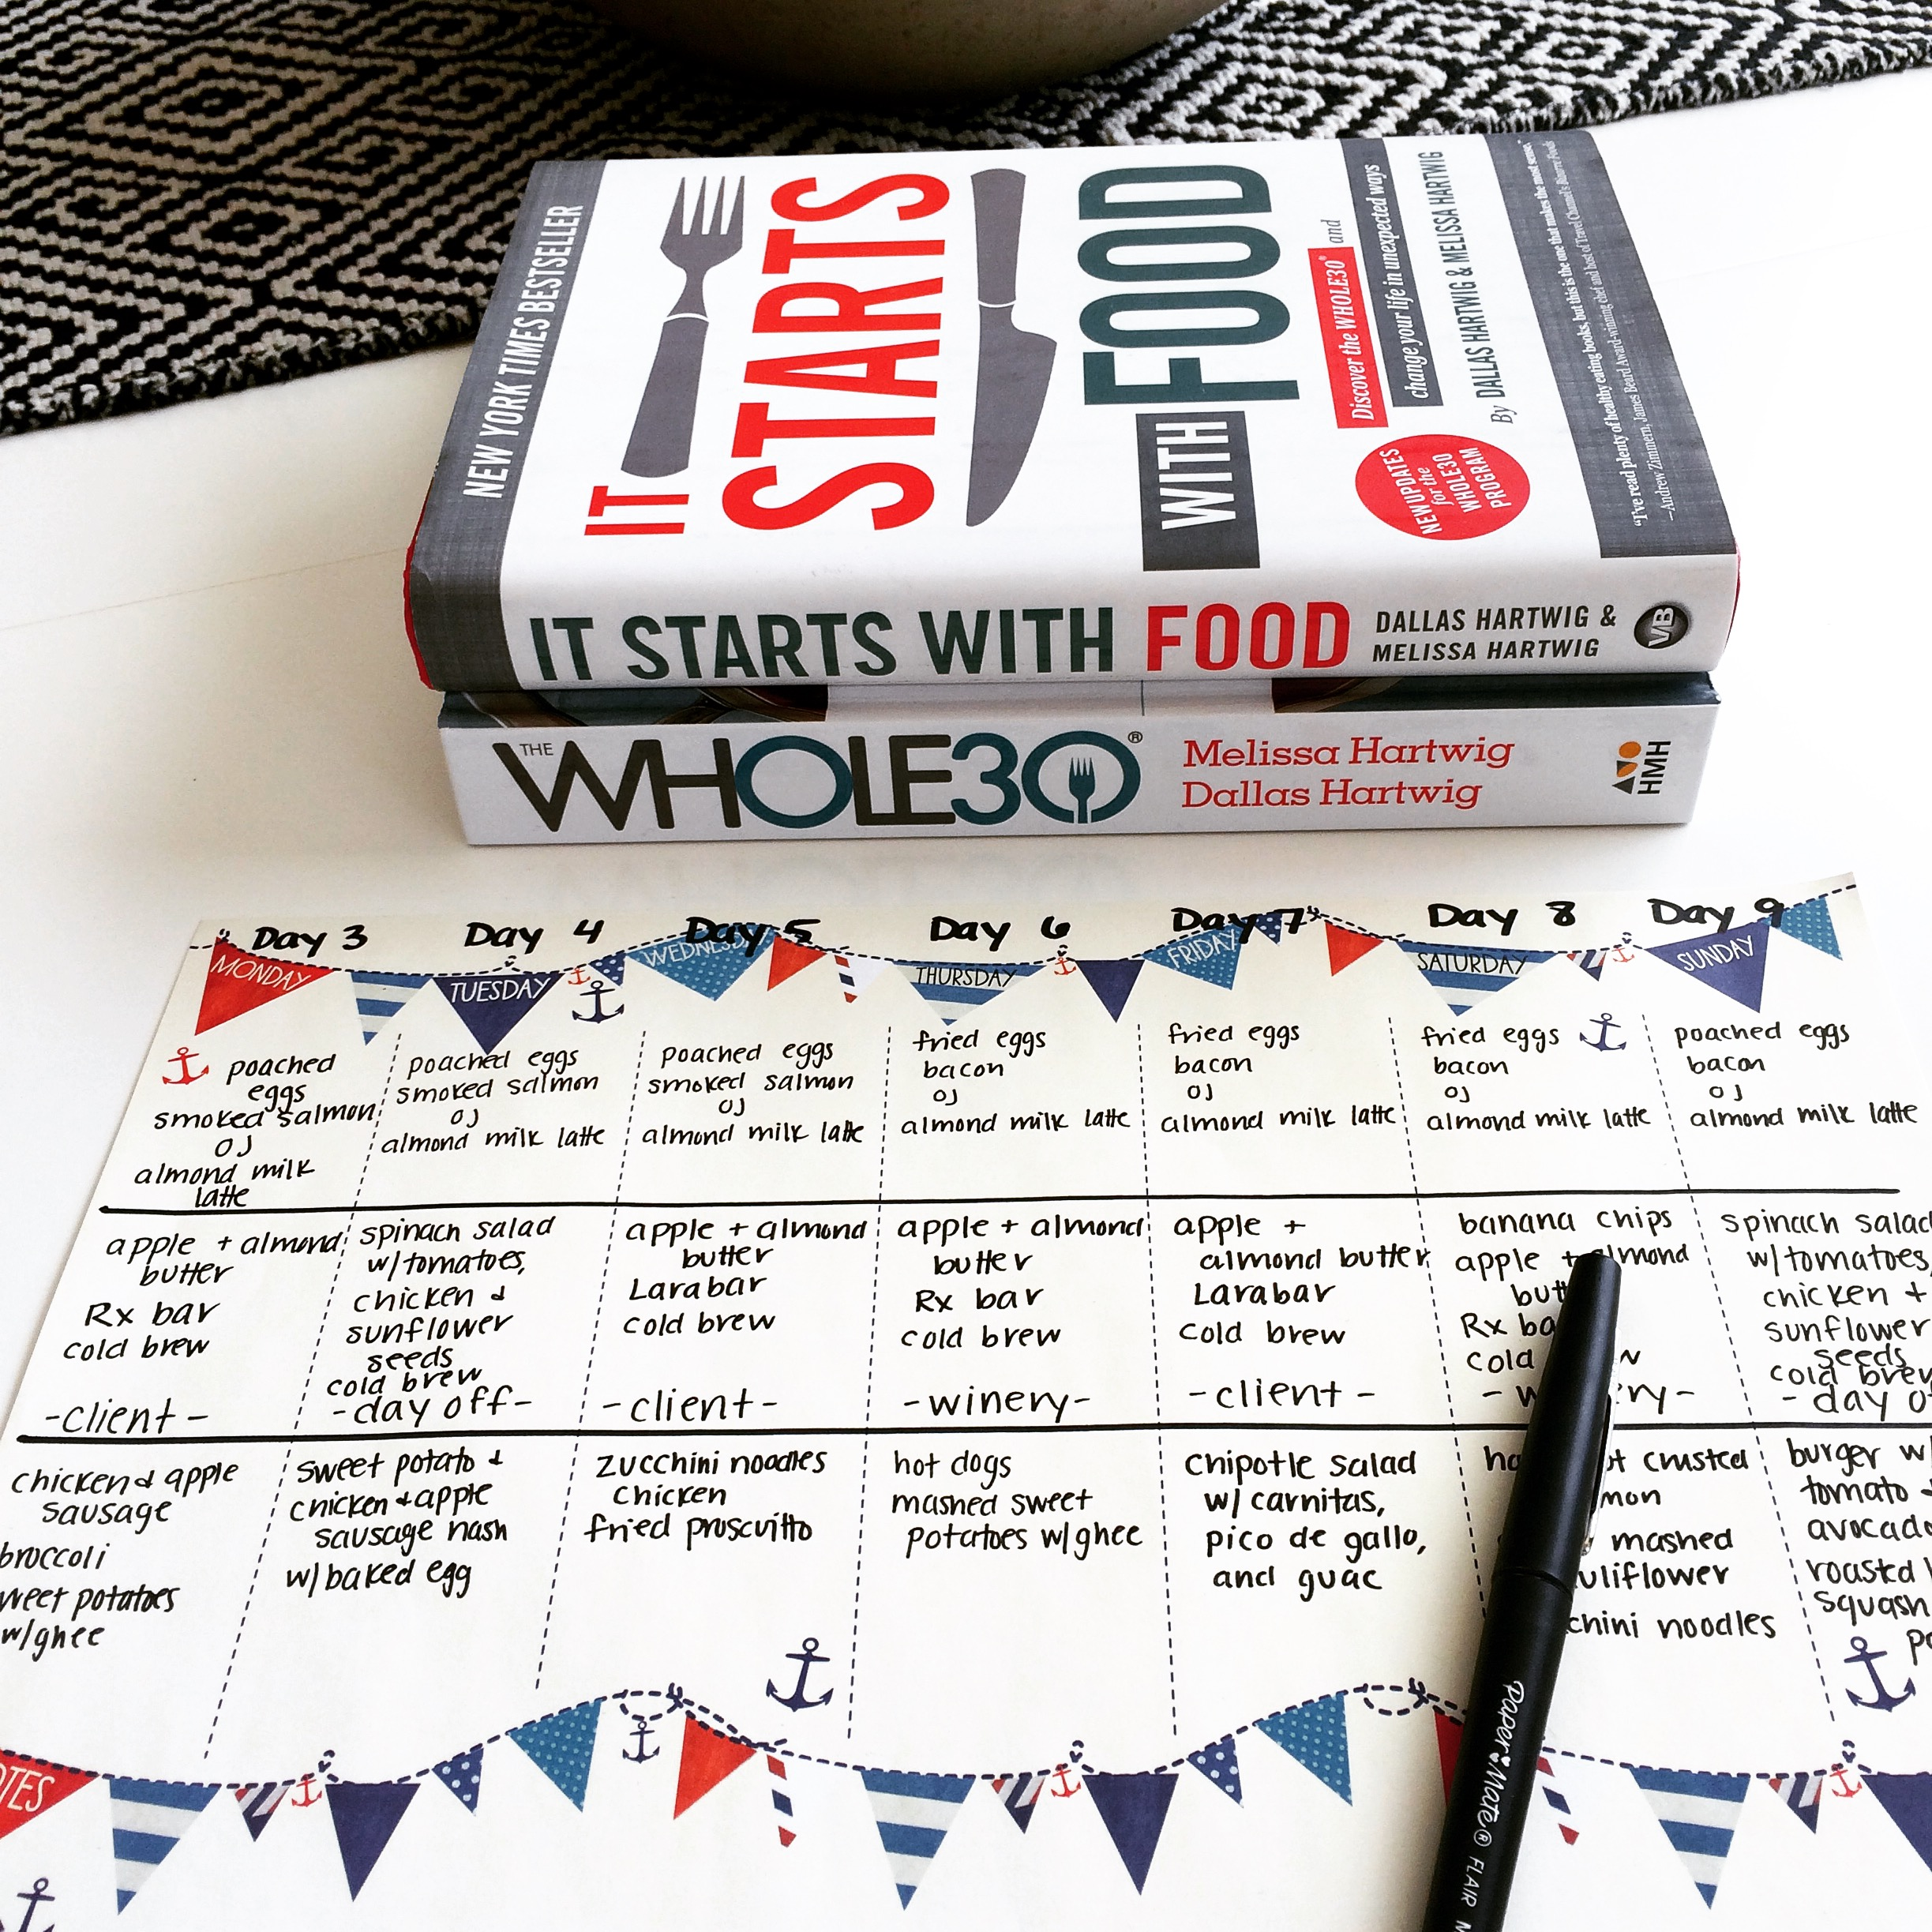 Whole30 meal planning calendar